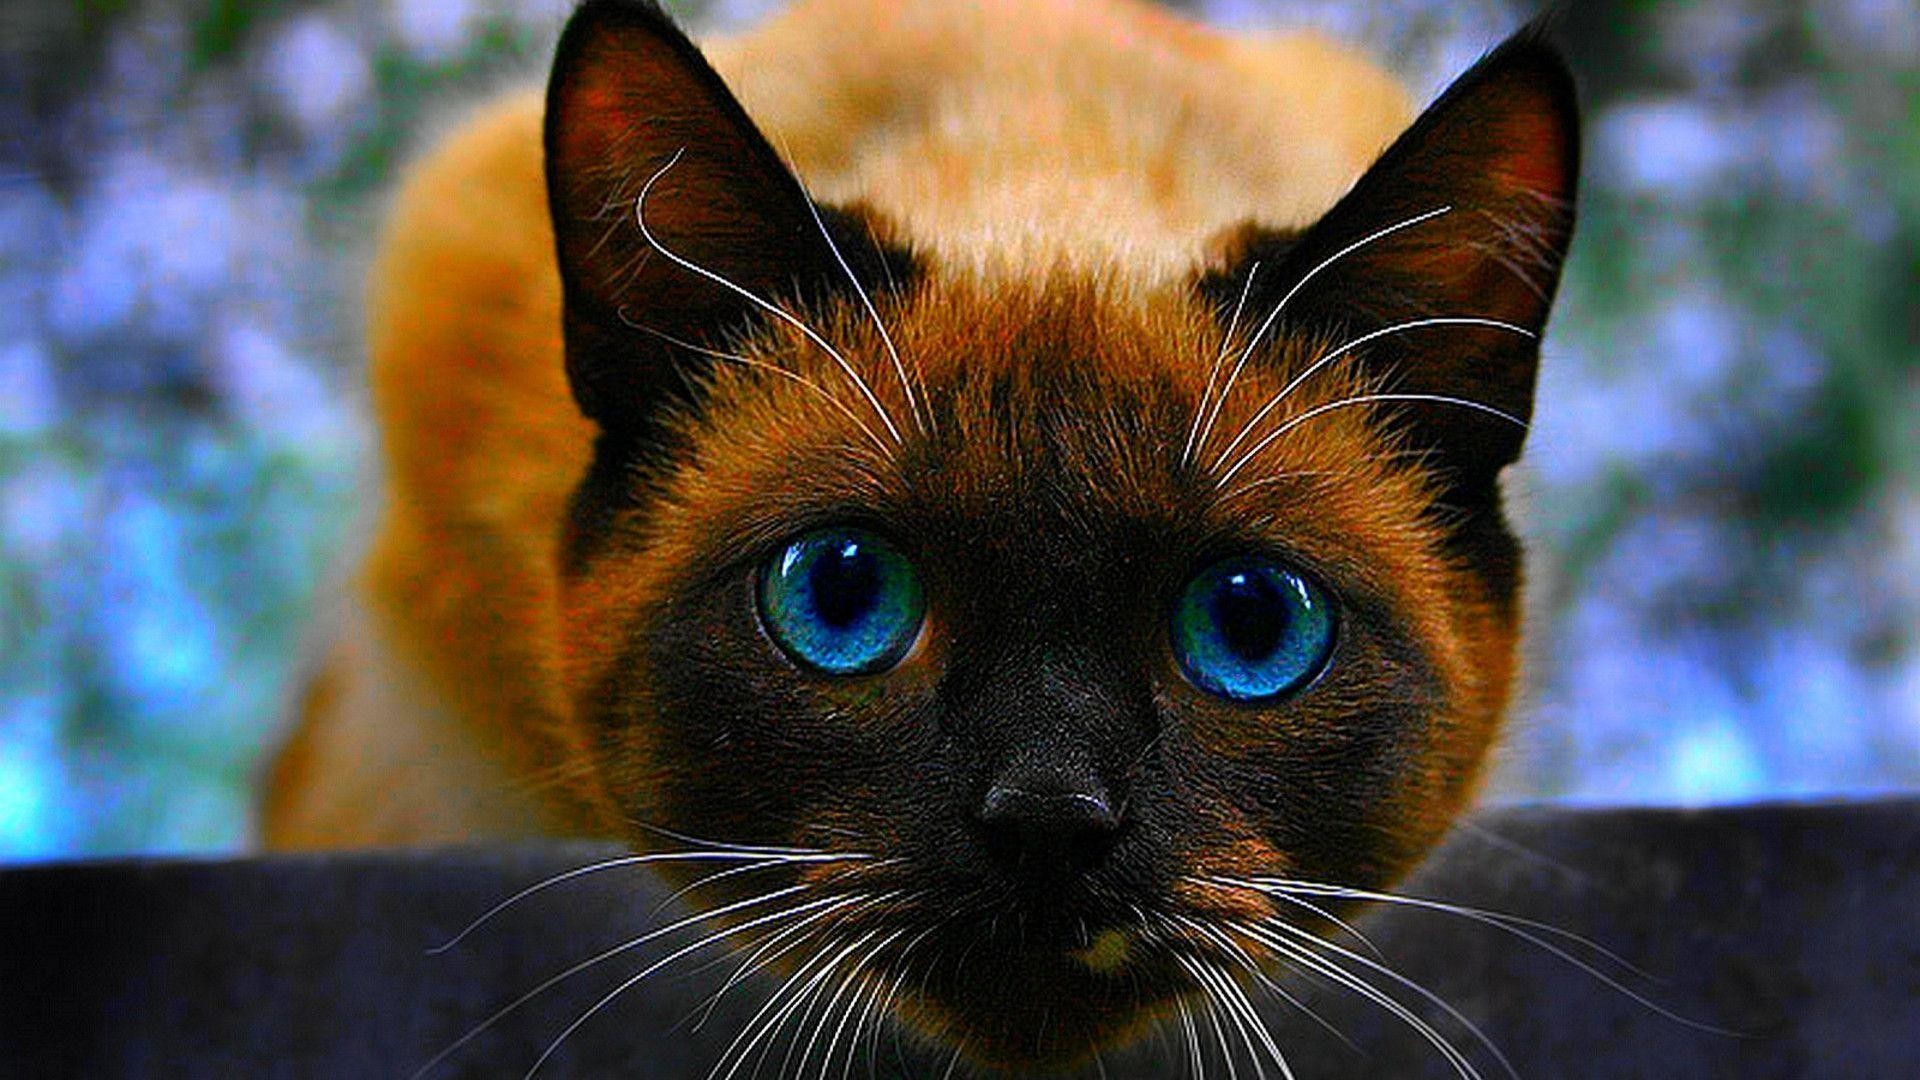 1920x1080 Siamese cat wallpapers - HD Wallpapers |High Definition| 100 .